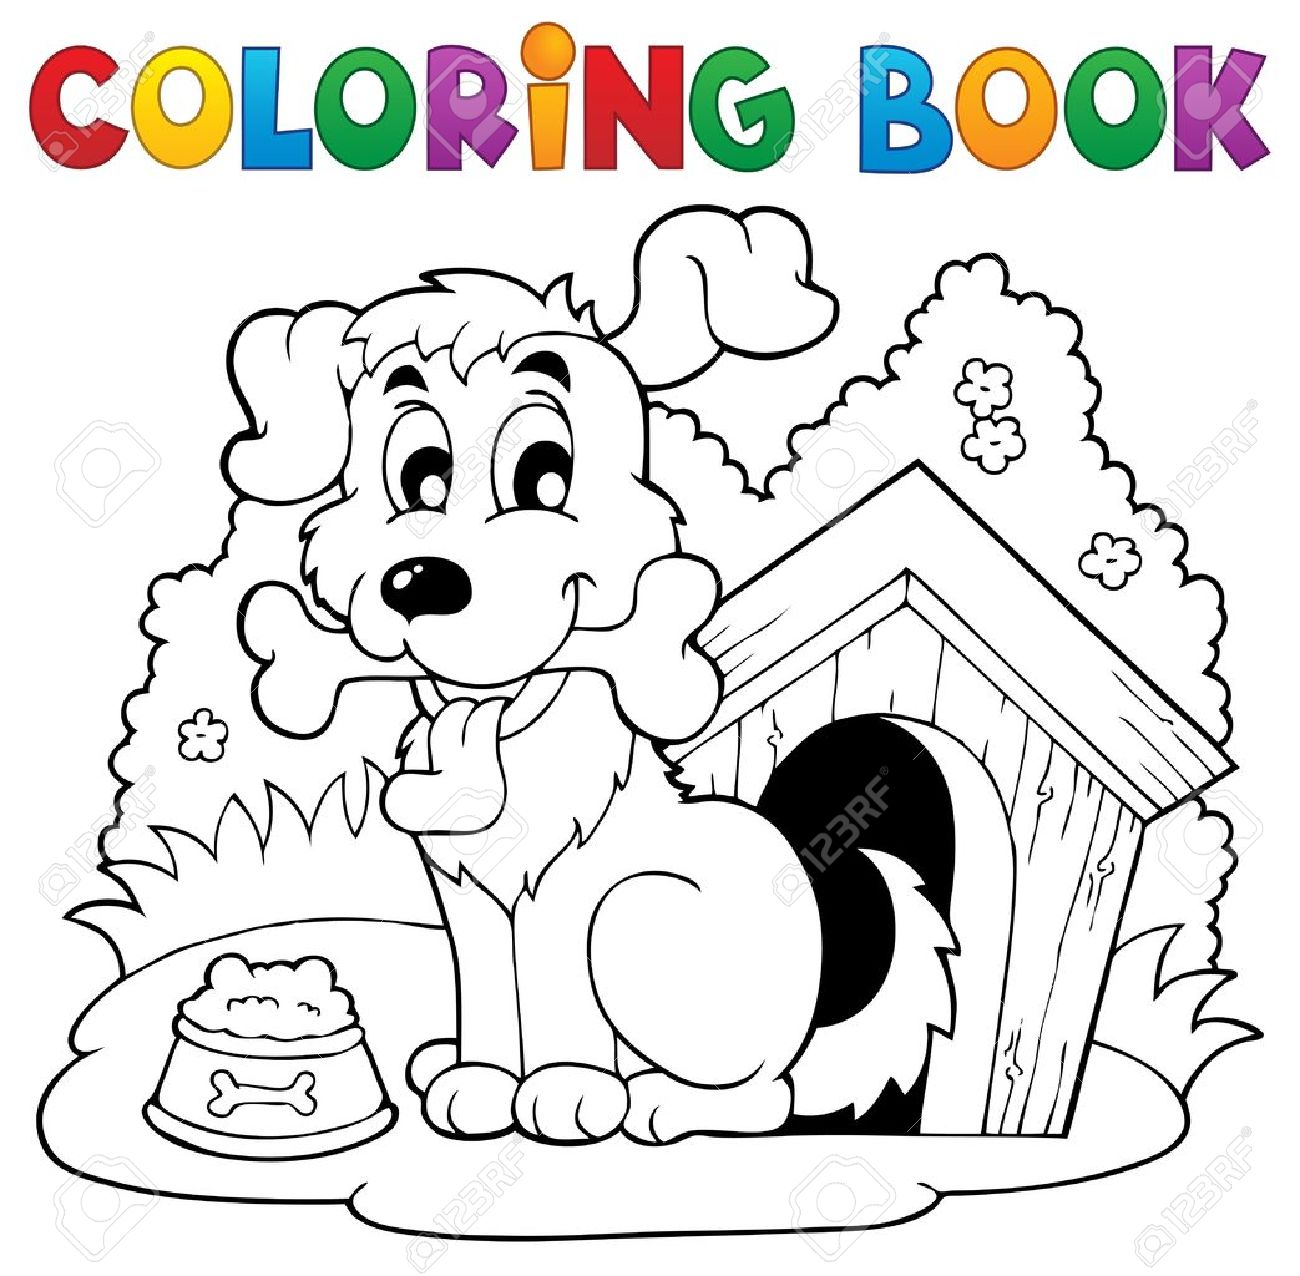 82 594 coloring book stock illustrations cliparts and royalty